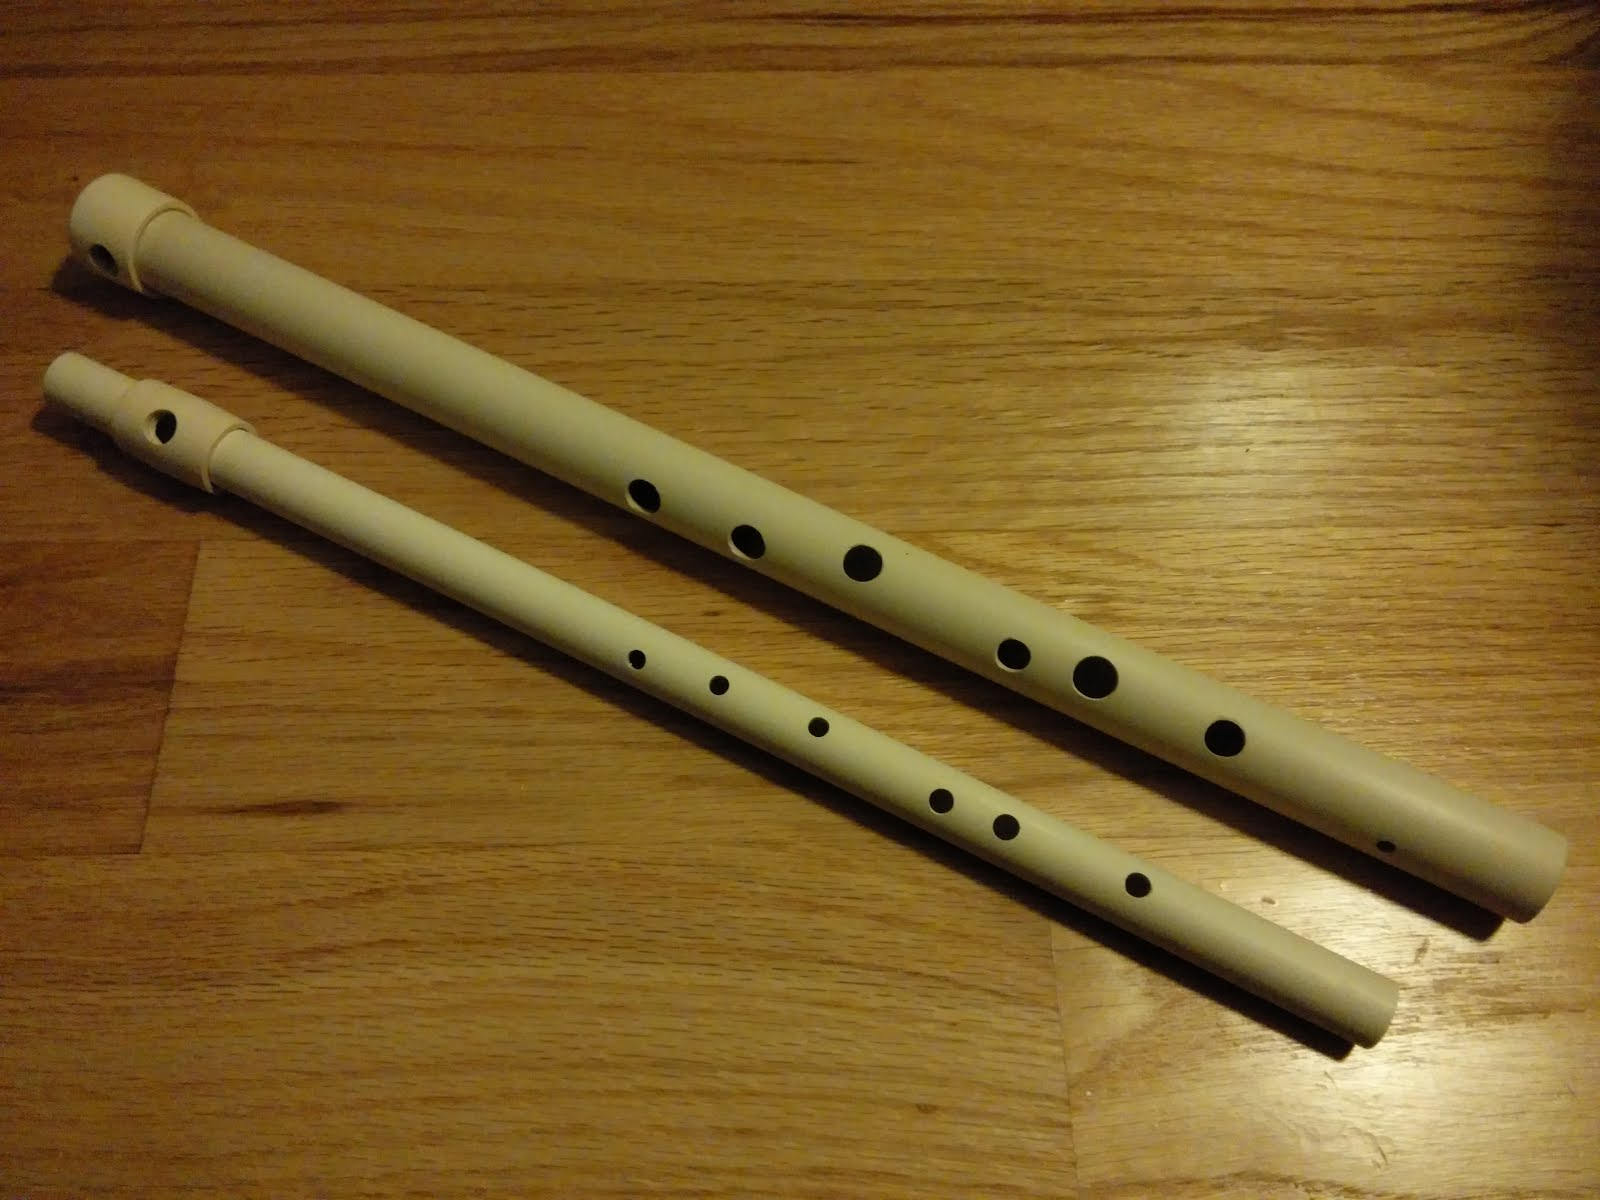 [Mattwins] How To Build Homemade PVC and CPVC Flutes